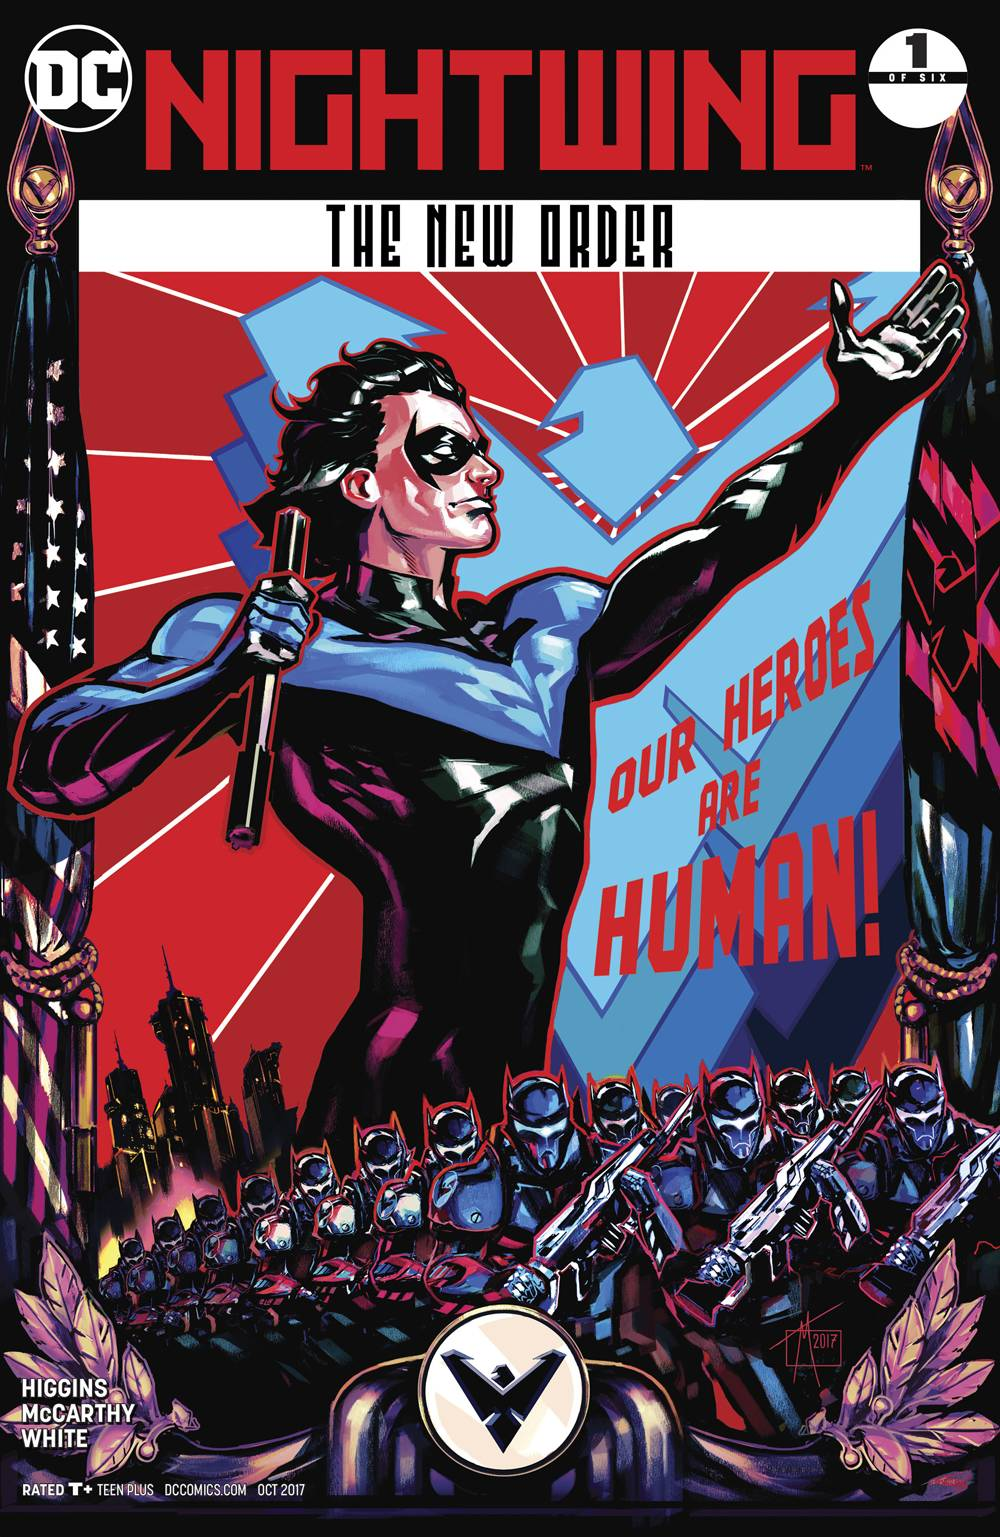 NIGHTWING THE NEW ORDER 1 of 6.jpg